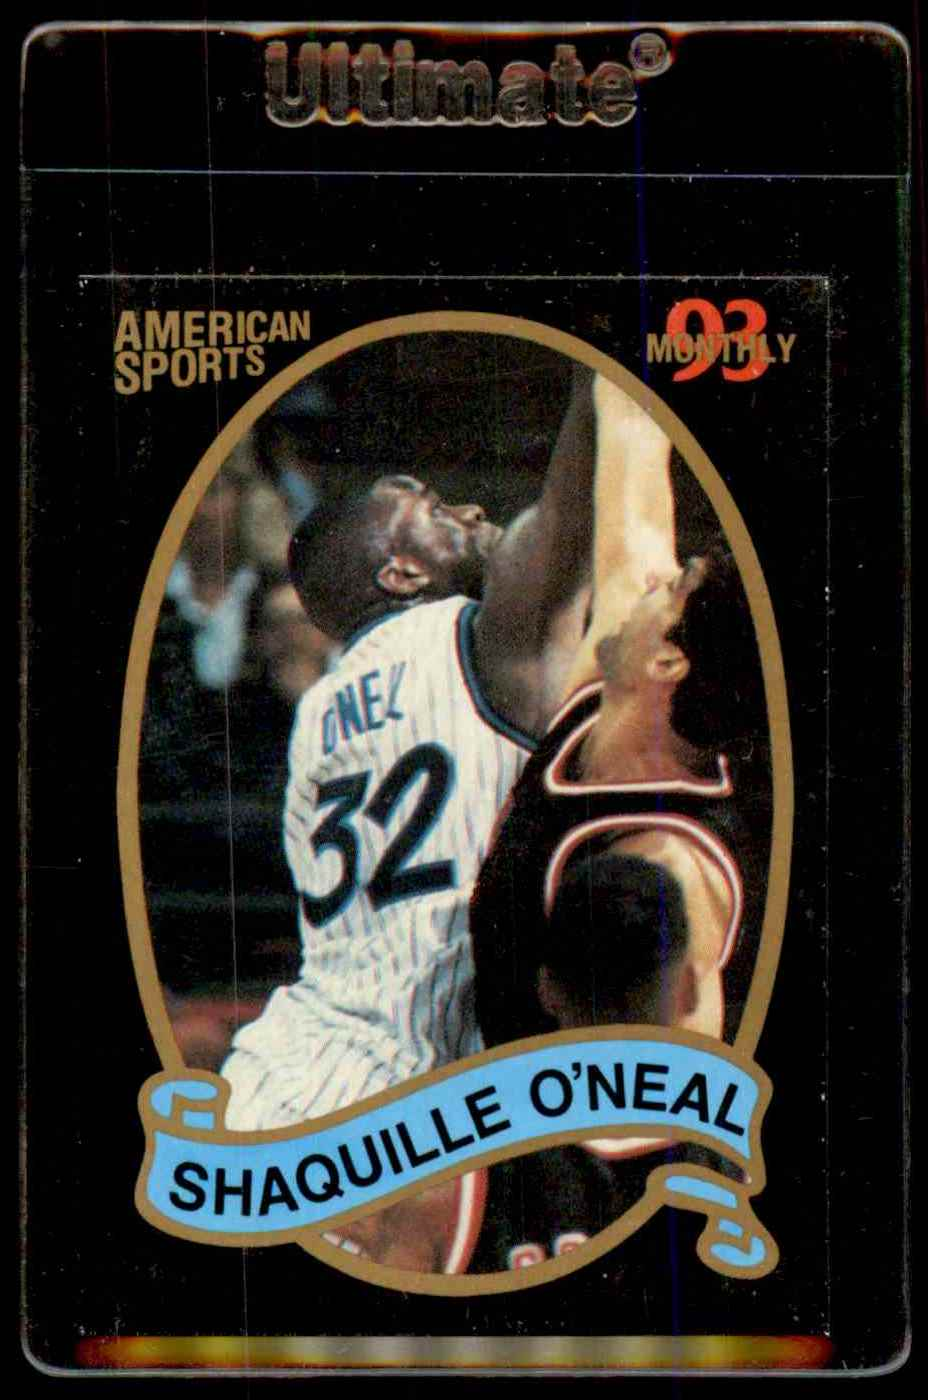 1993-94 American Sports Shaquille O'Neal #NNO card front image